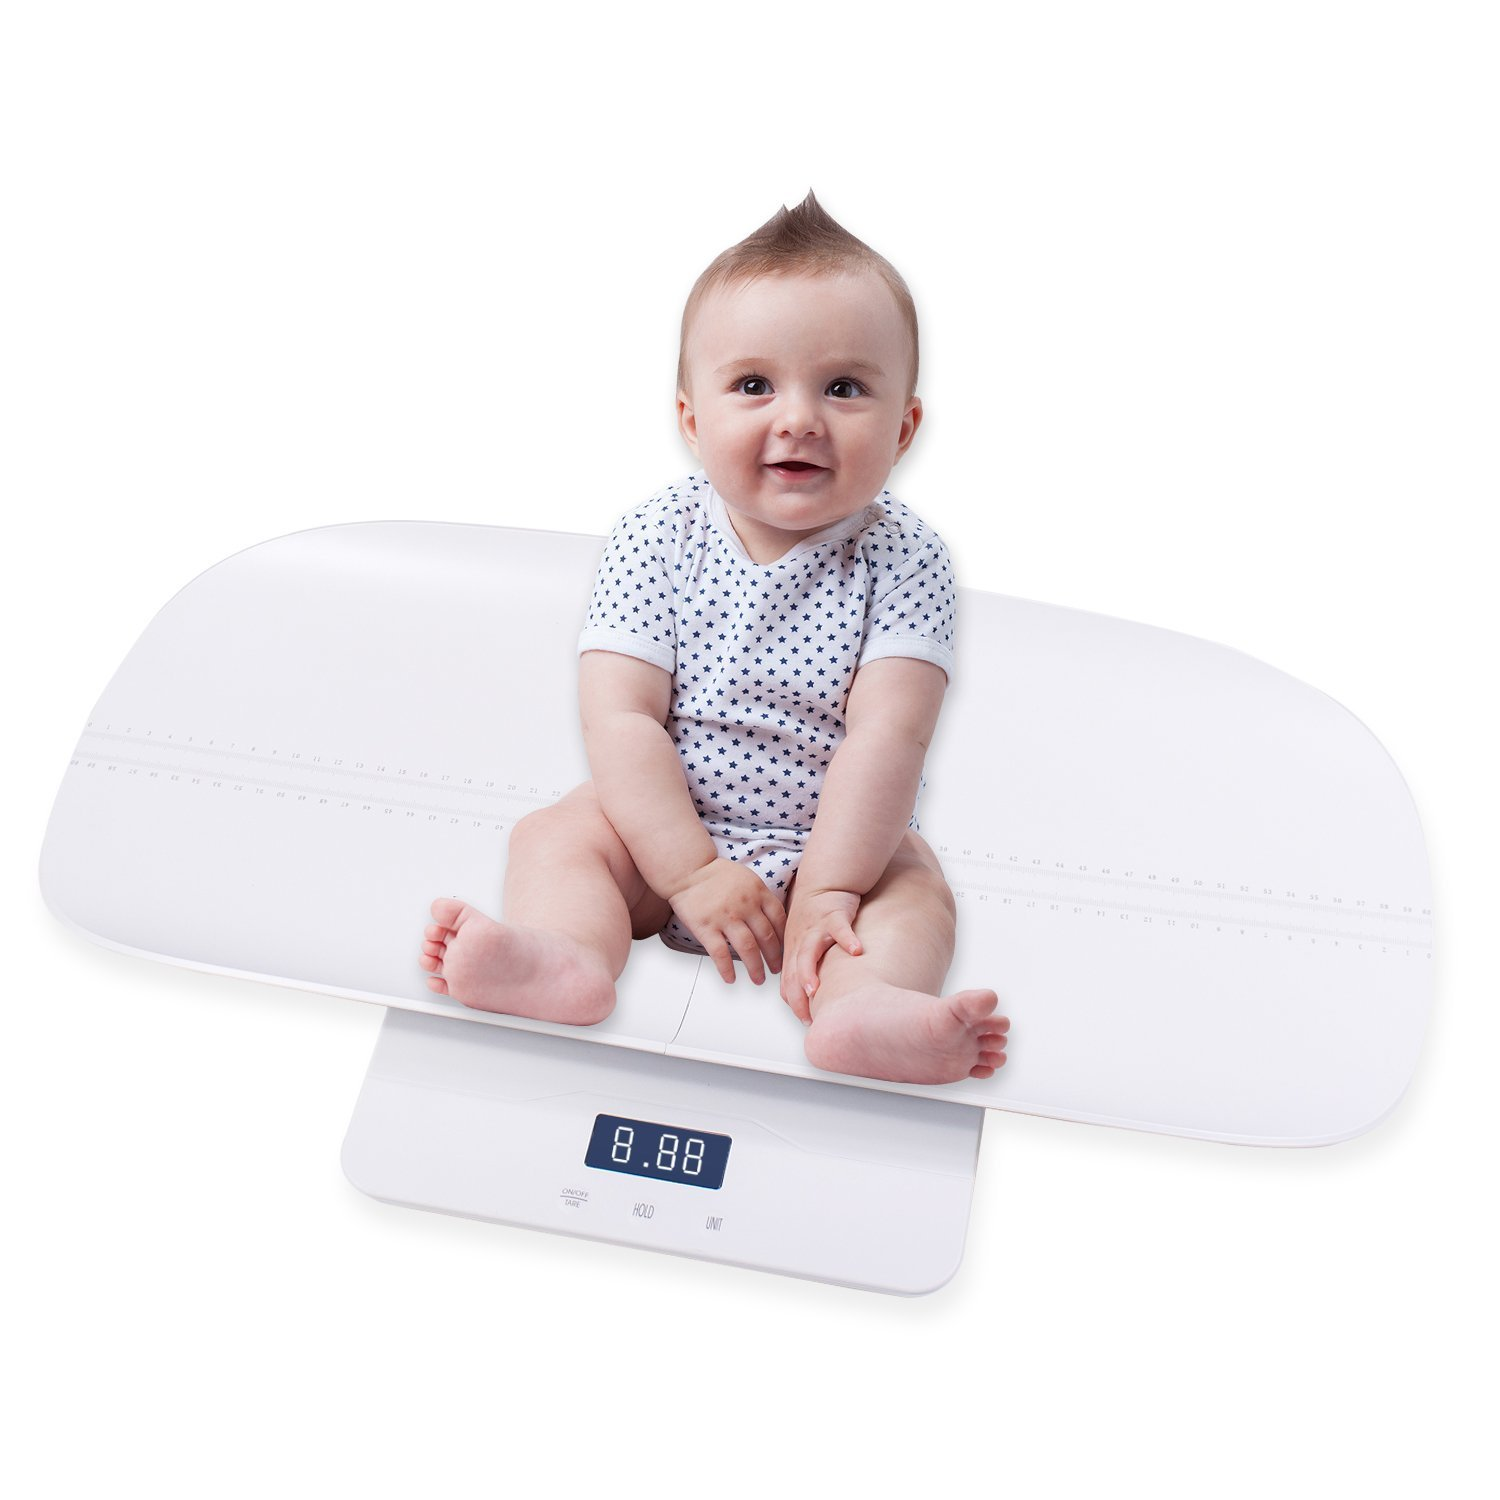 HealthTree Multi-Function Digital Baby Scale to Measure Infant Weight Accurately